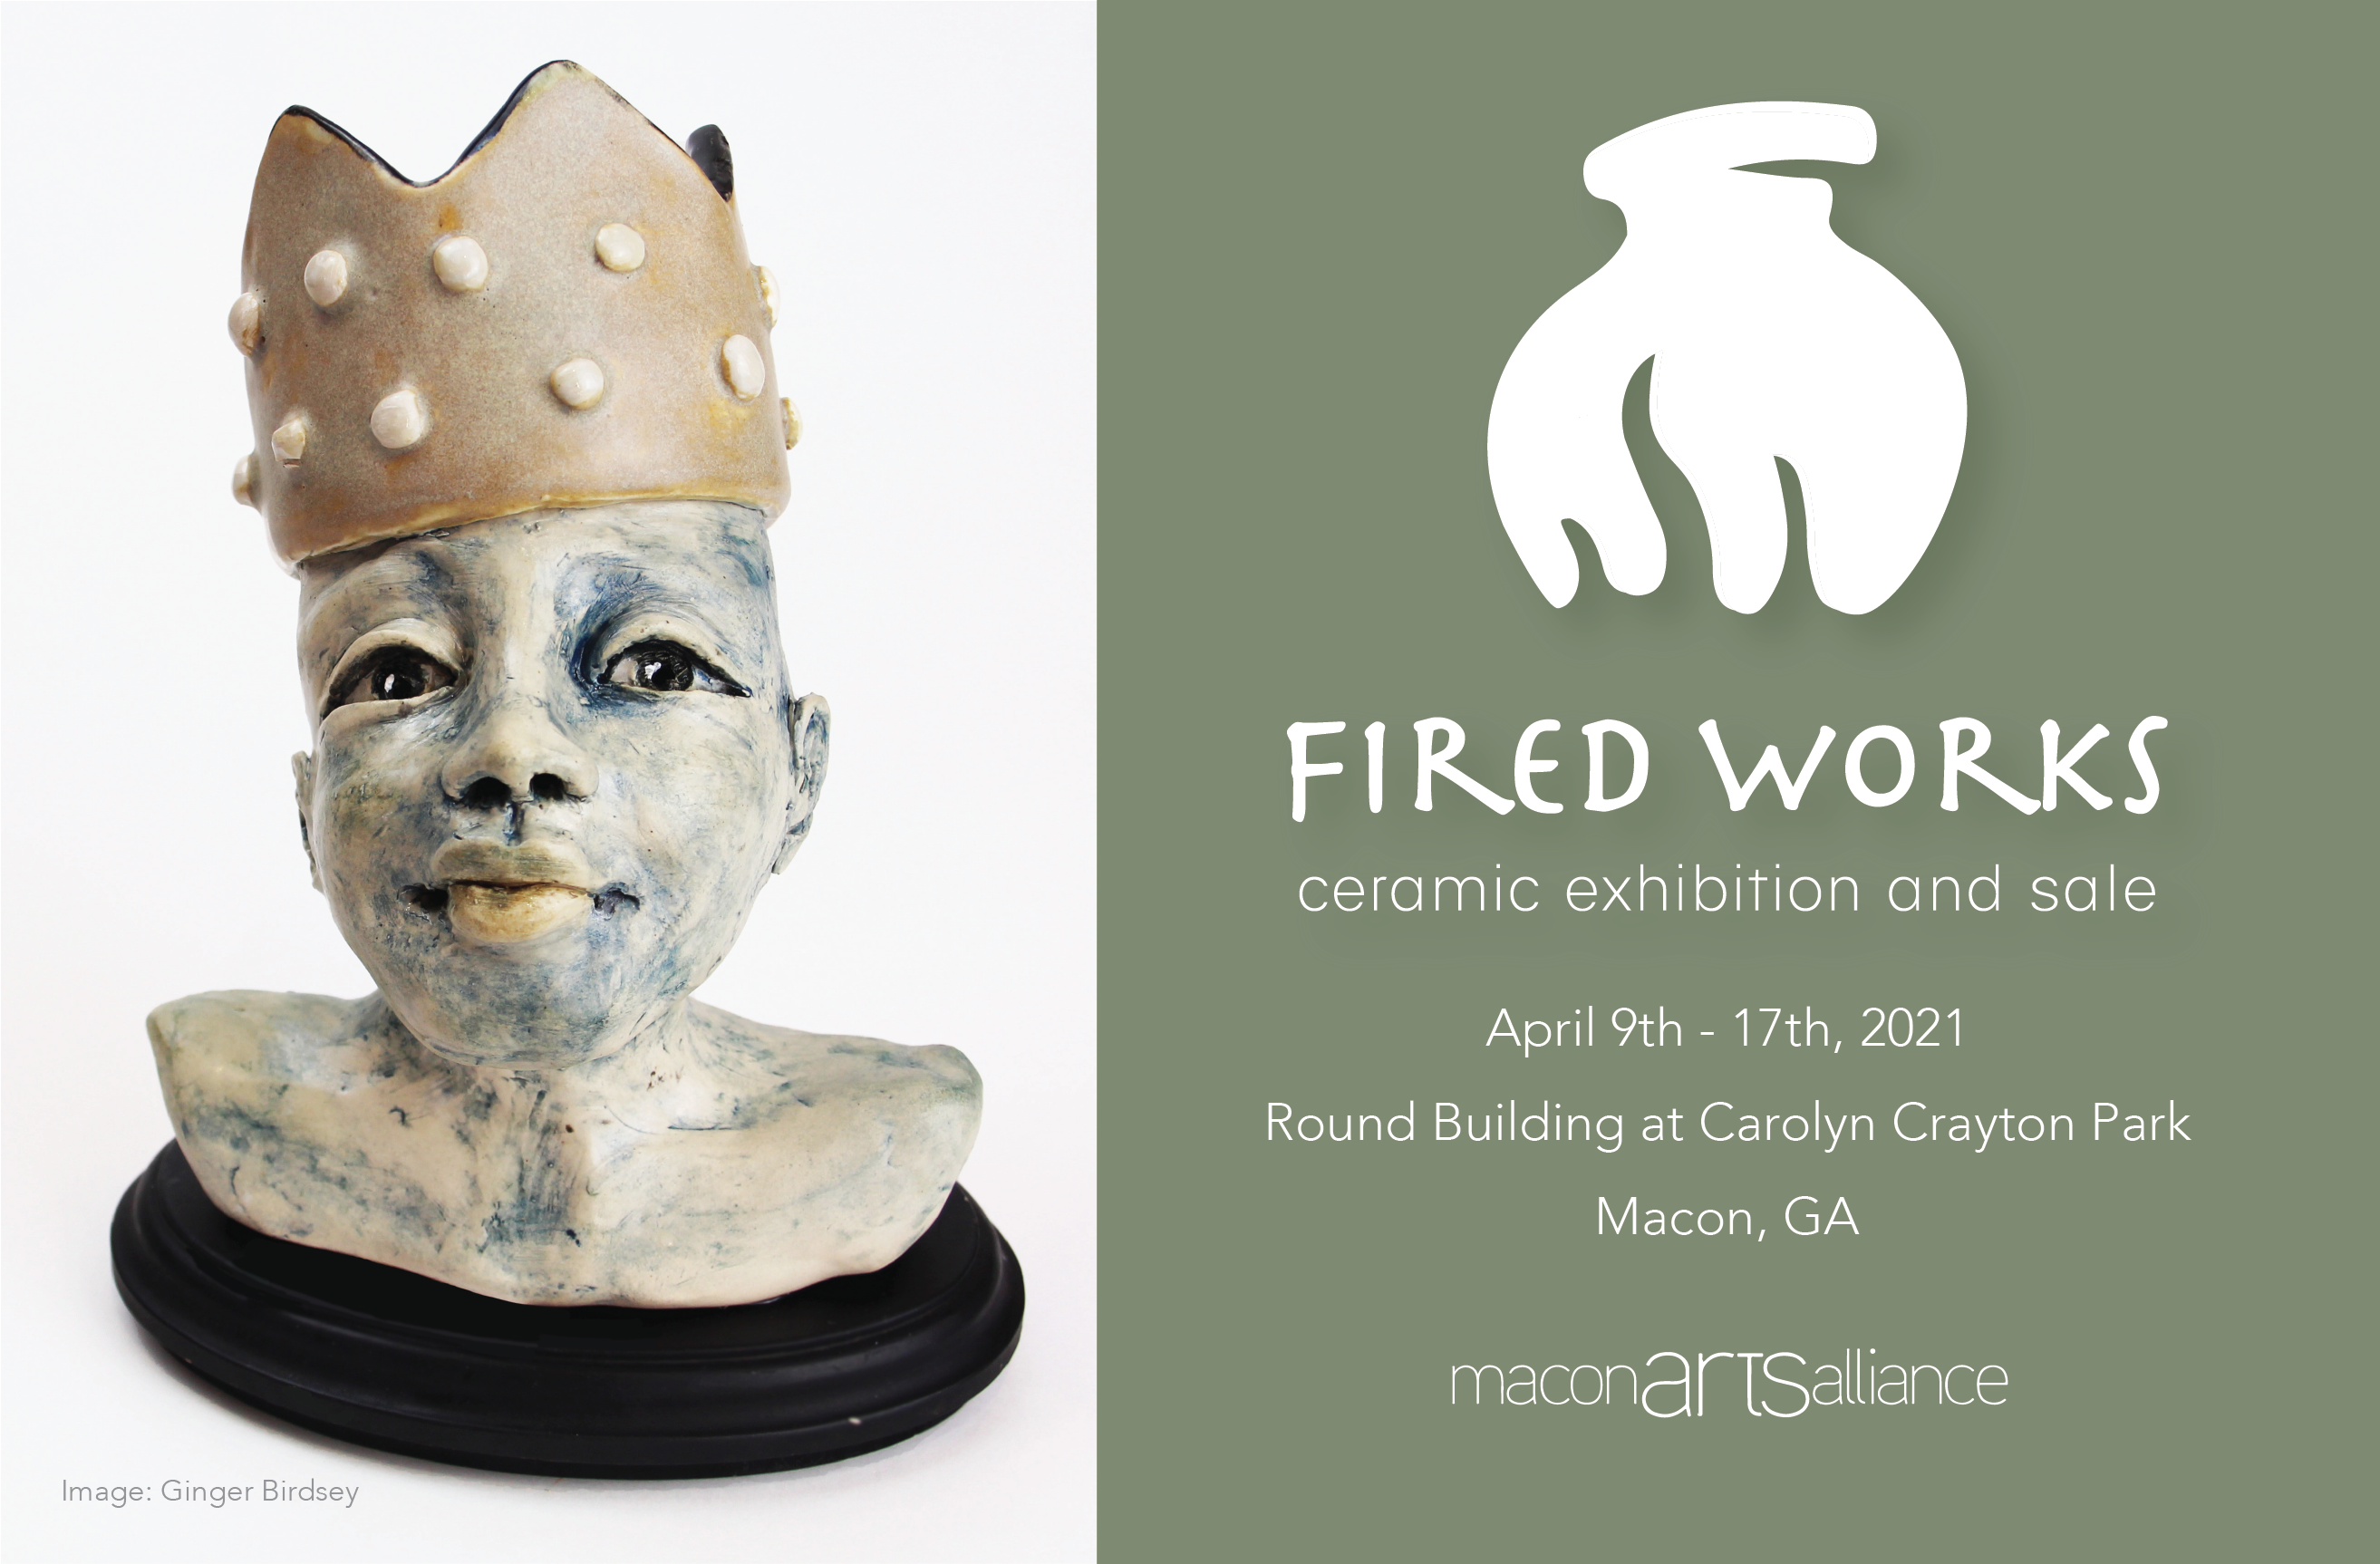 Fired Works 2021